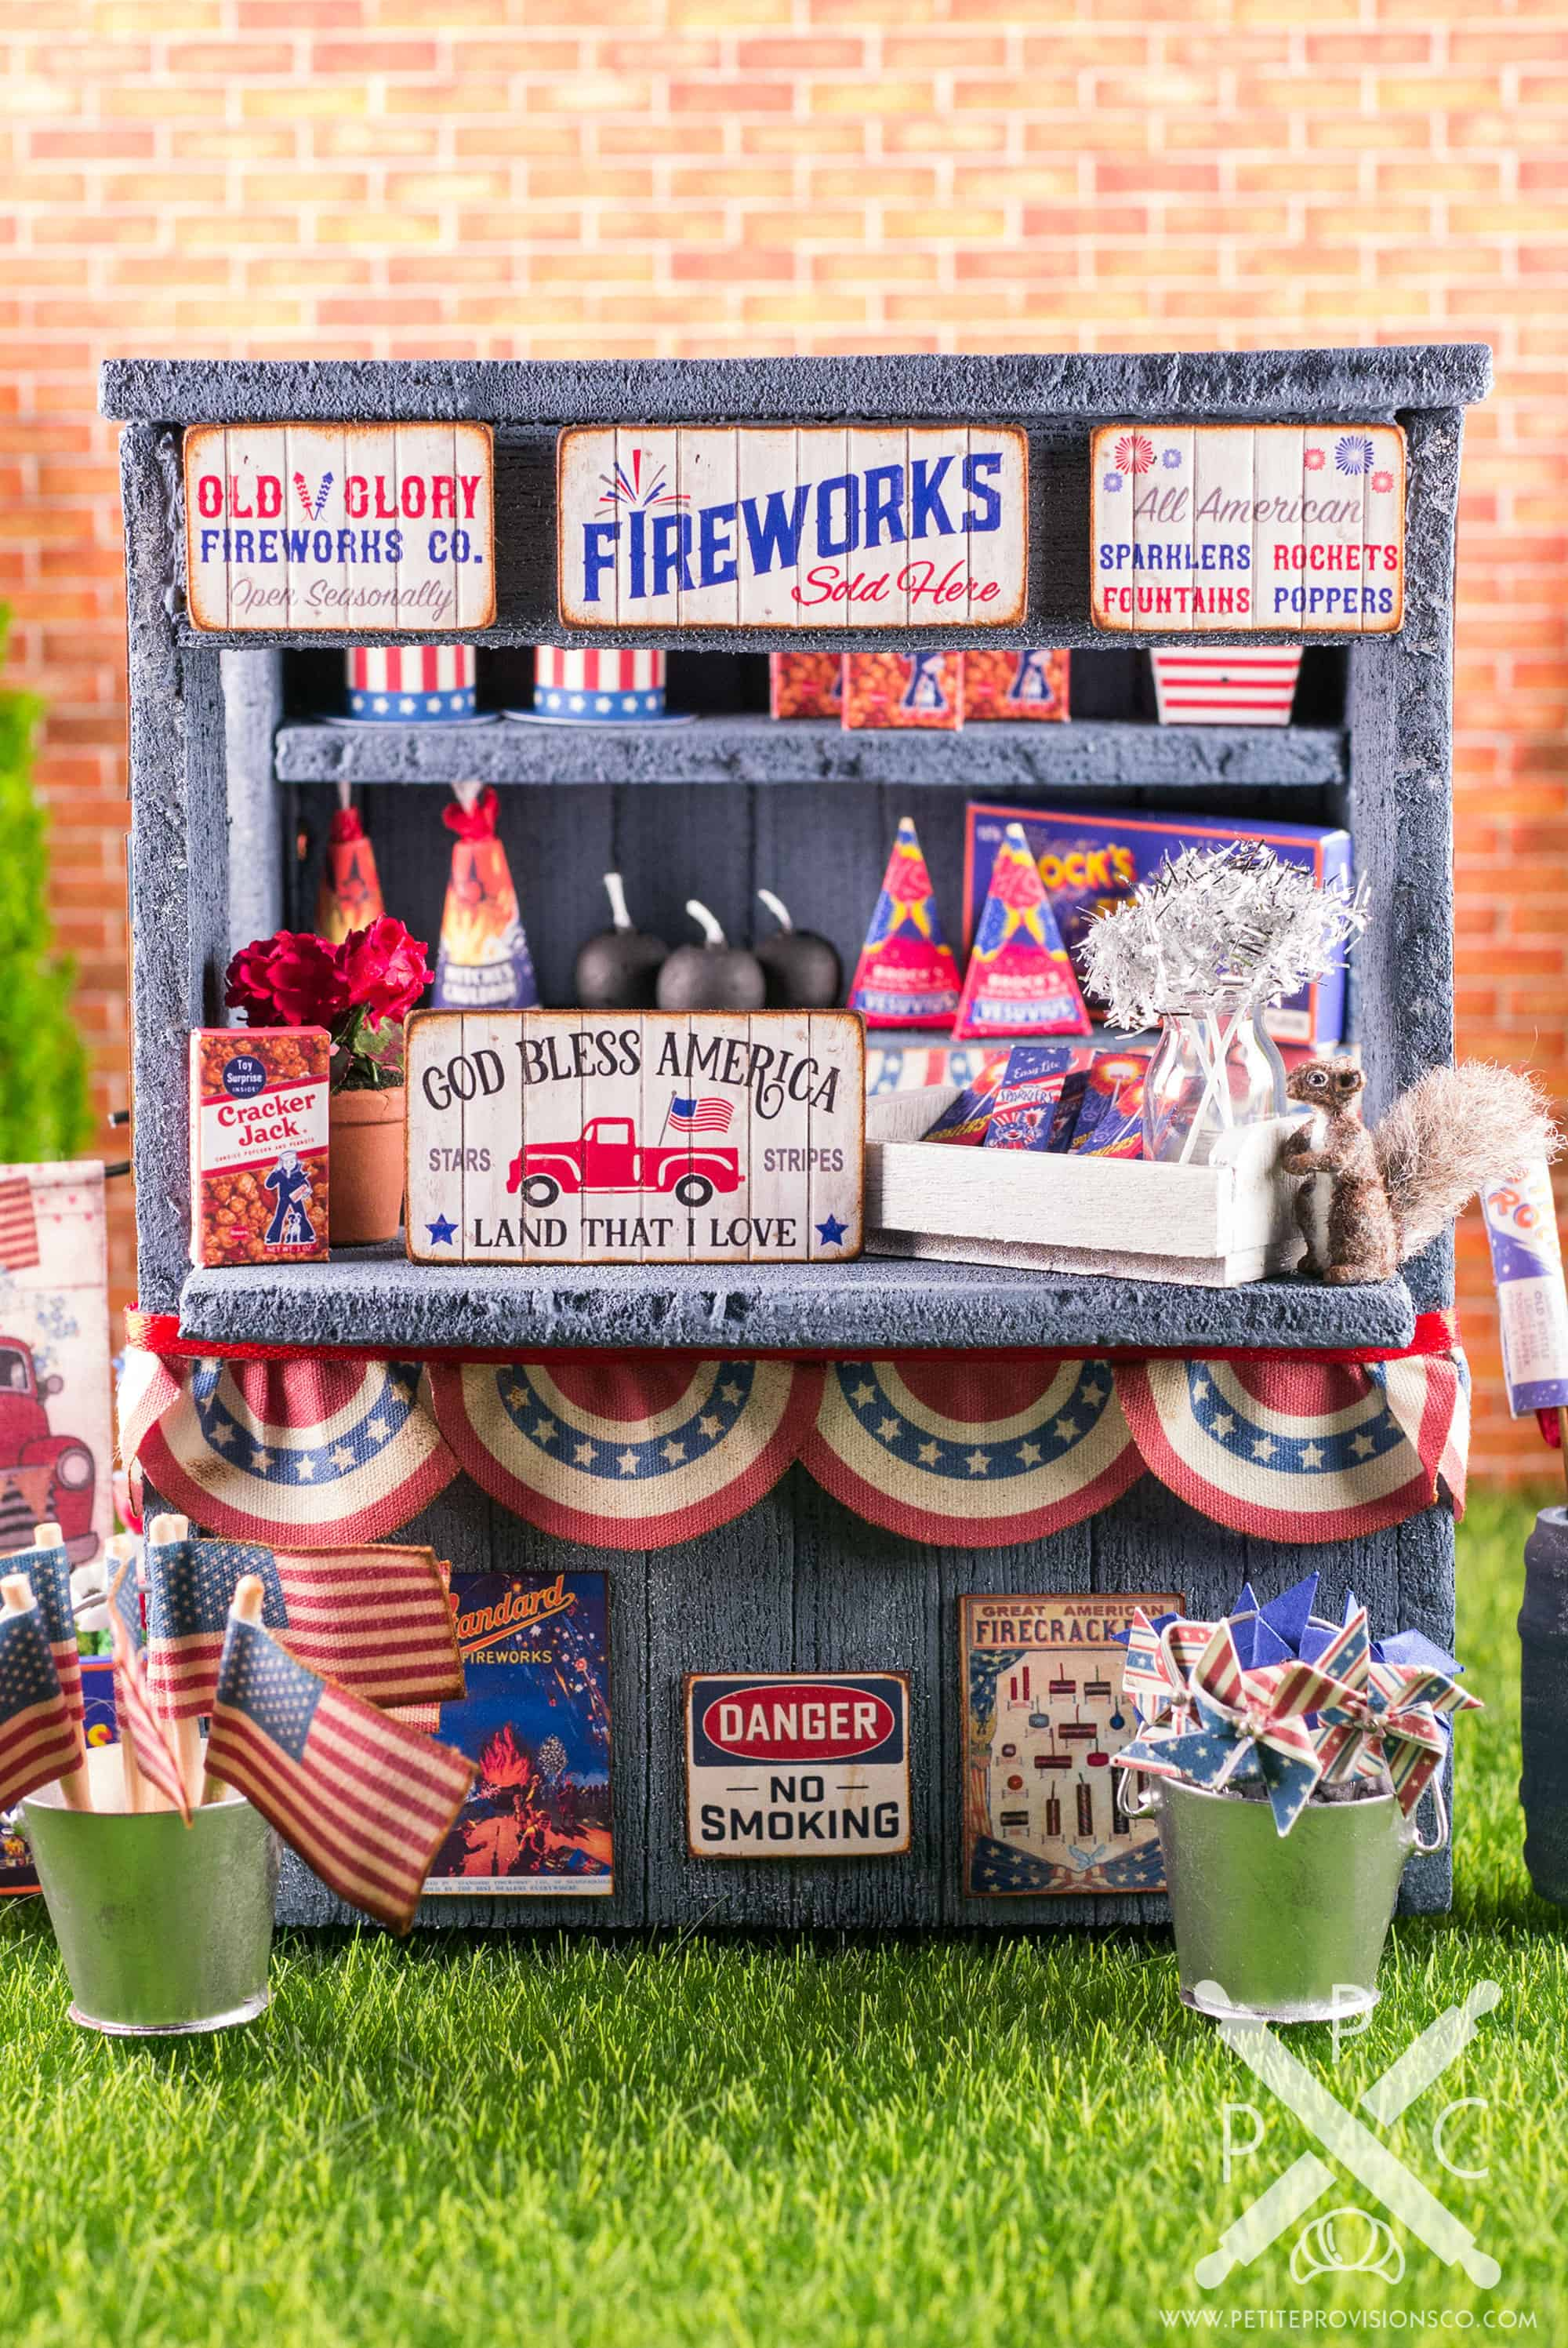 Dollhouse Miniature Roadside Fireworks Stand by The Petite Provisions Co.